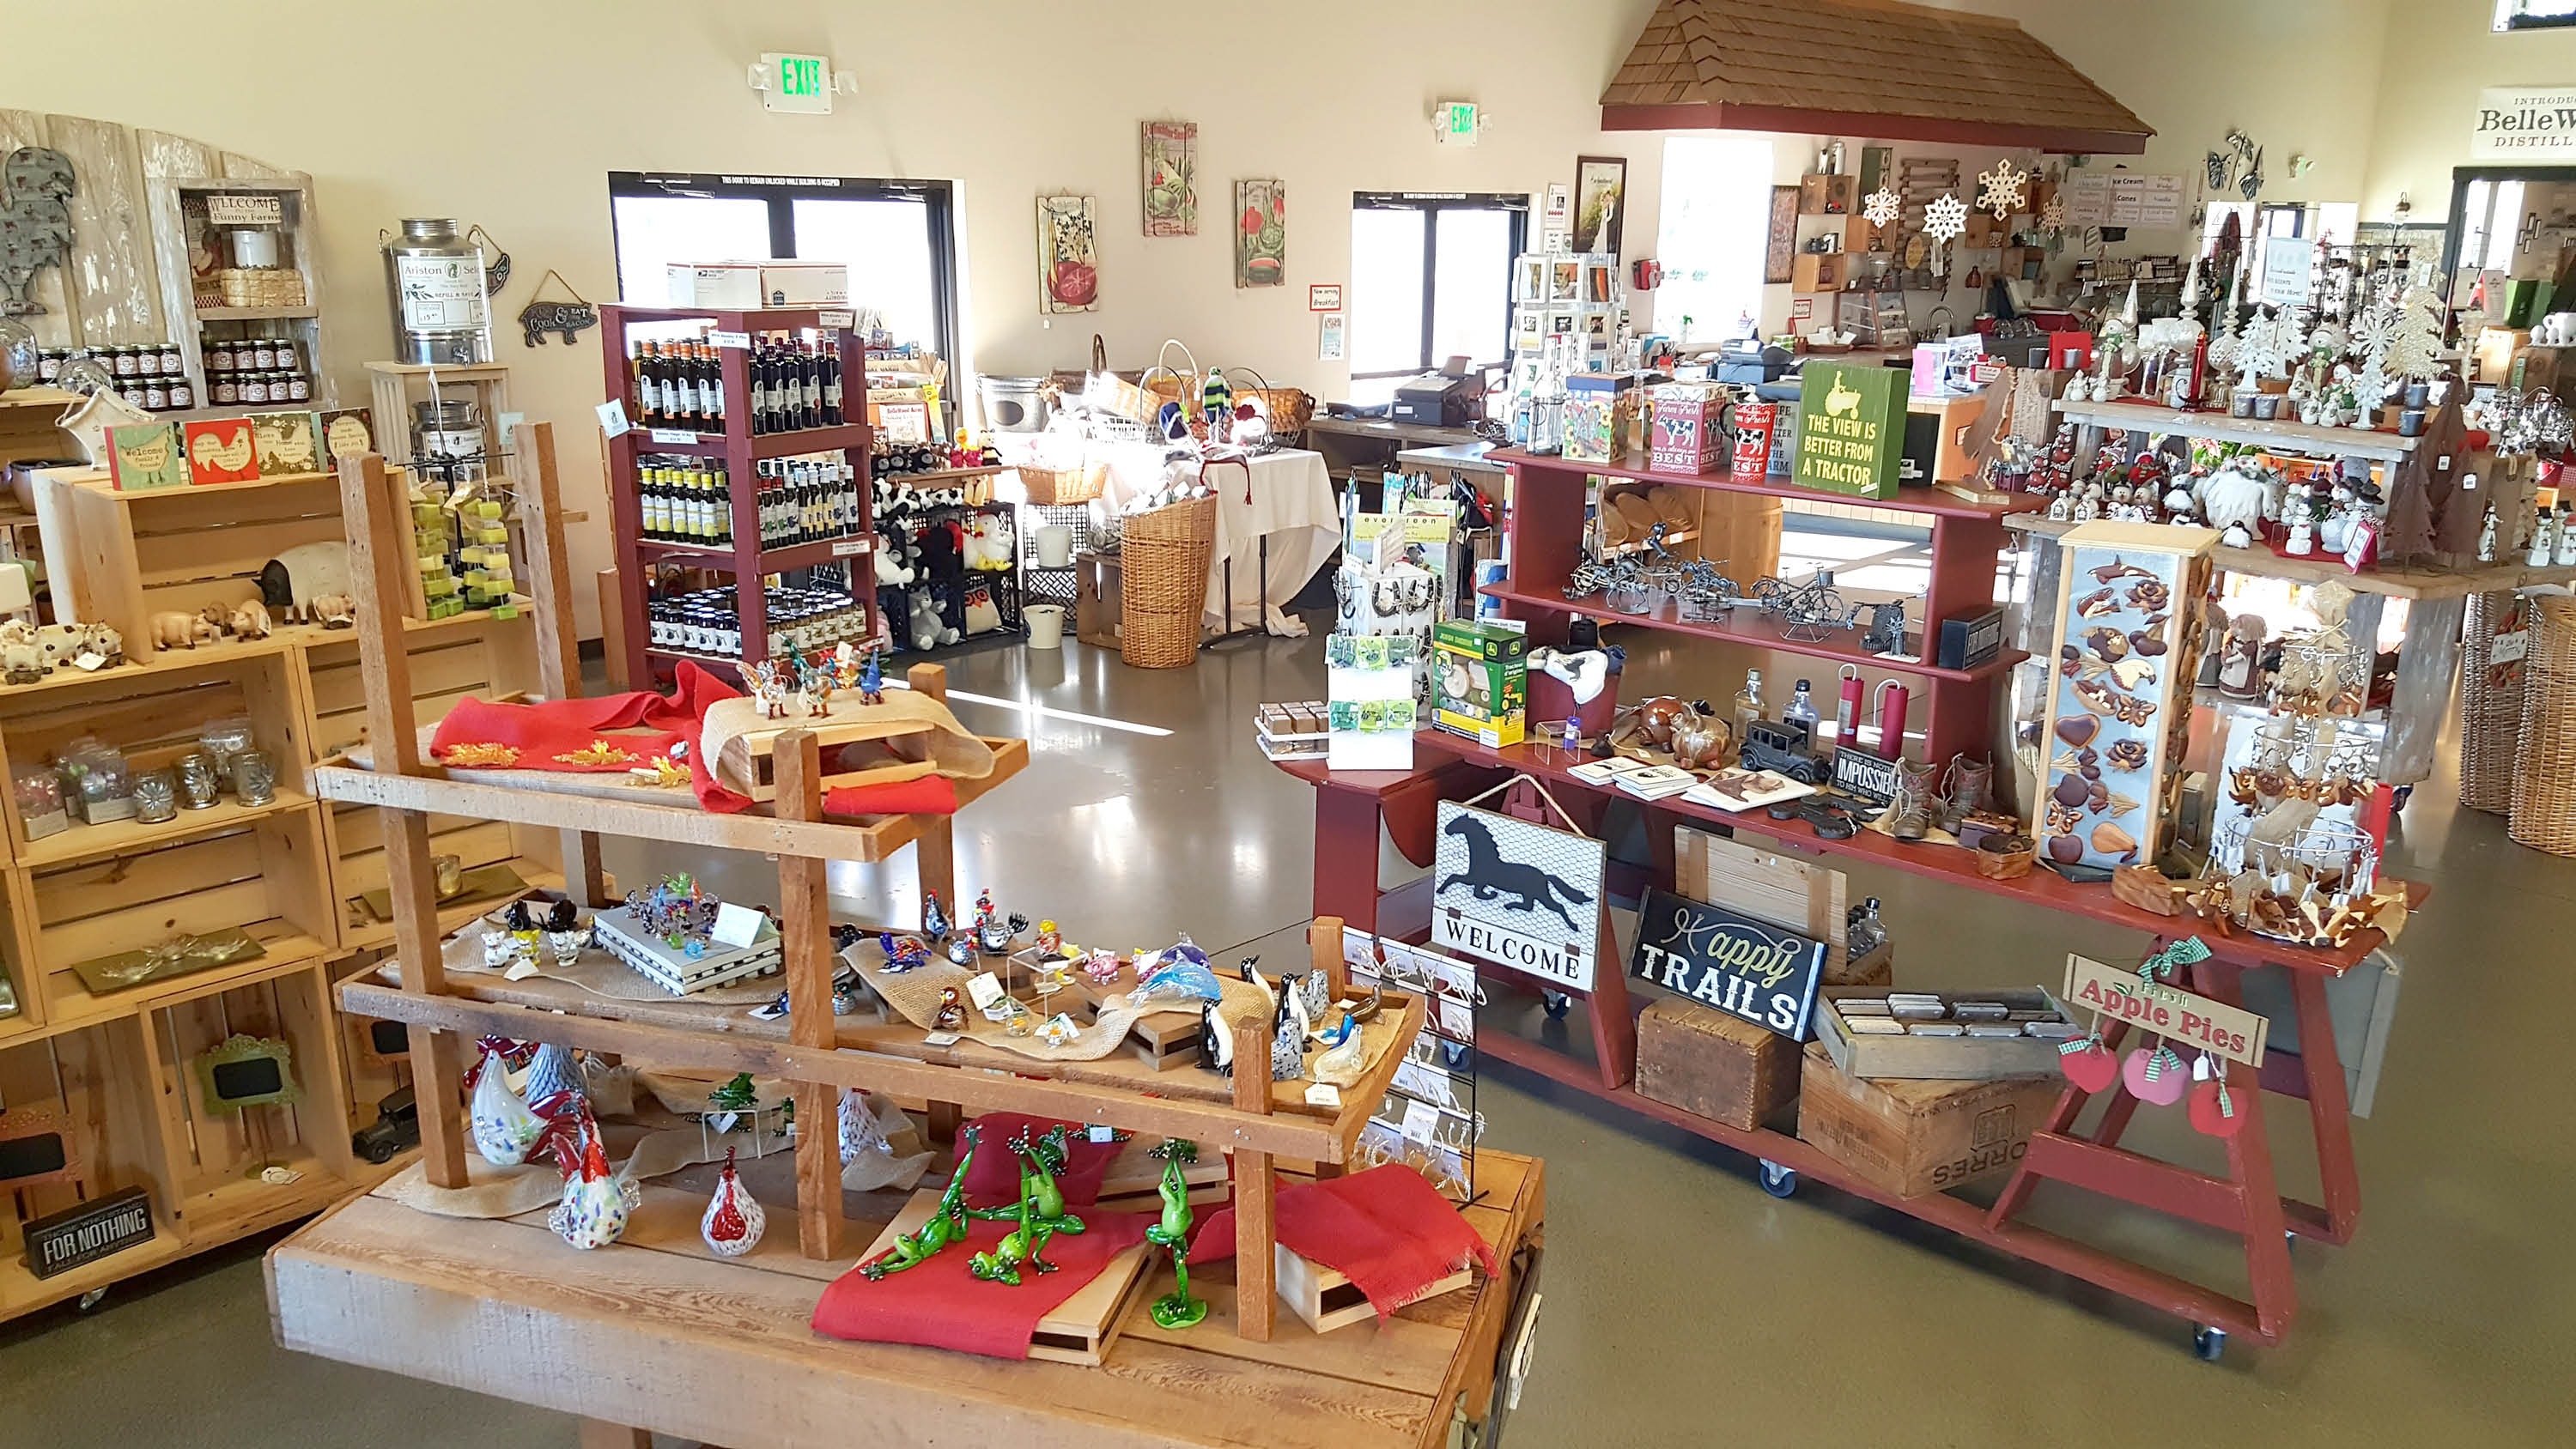 Bellewood acres cafe and farm lynden gift shop